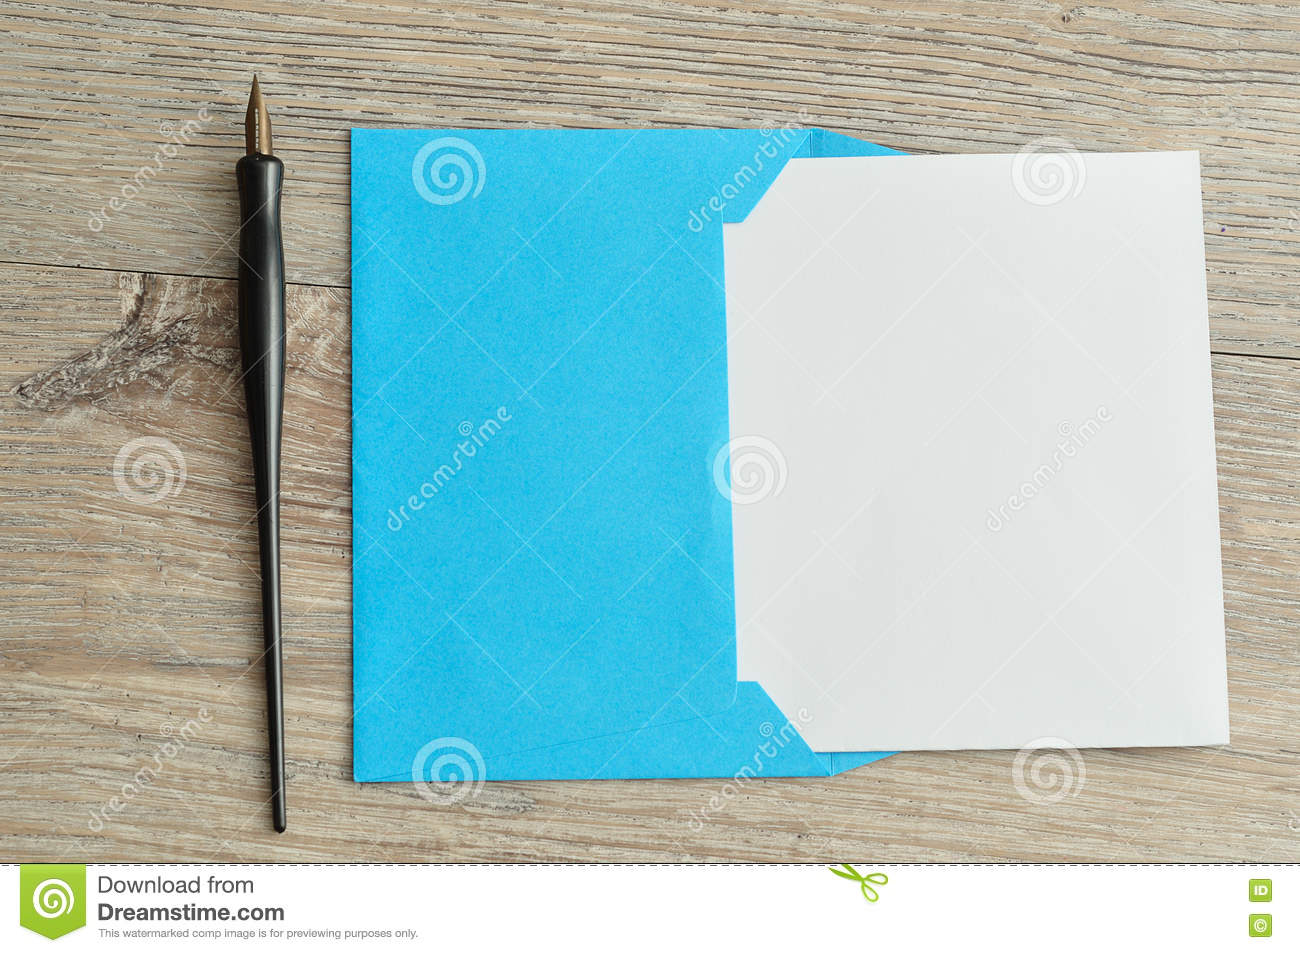 a piece of paper to write on